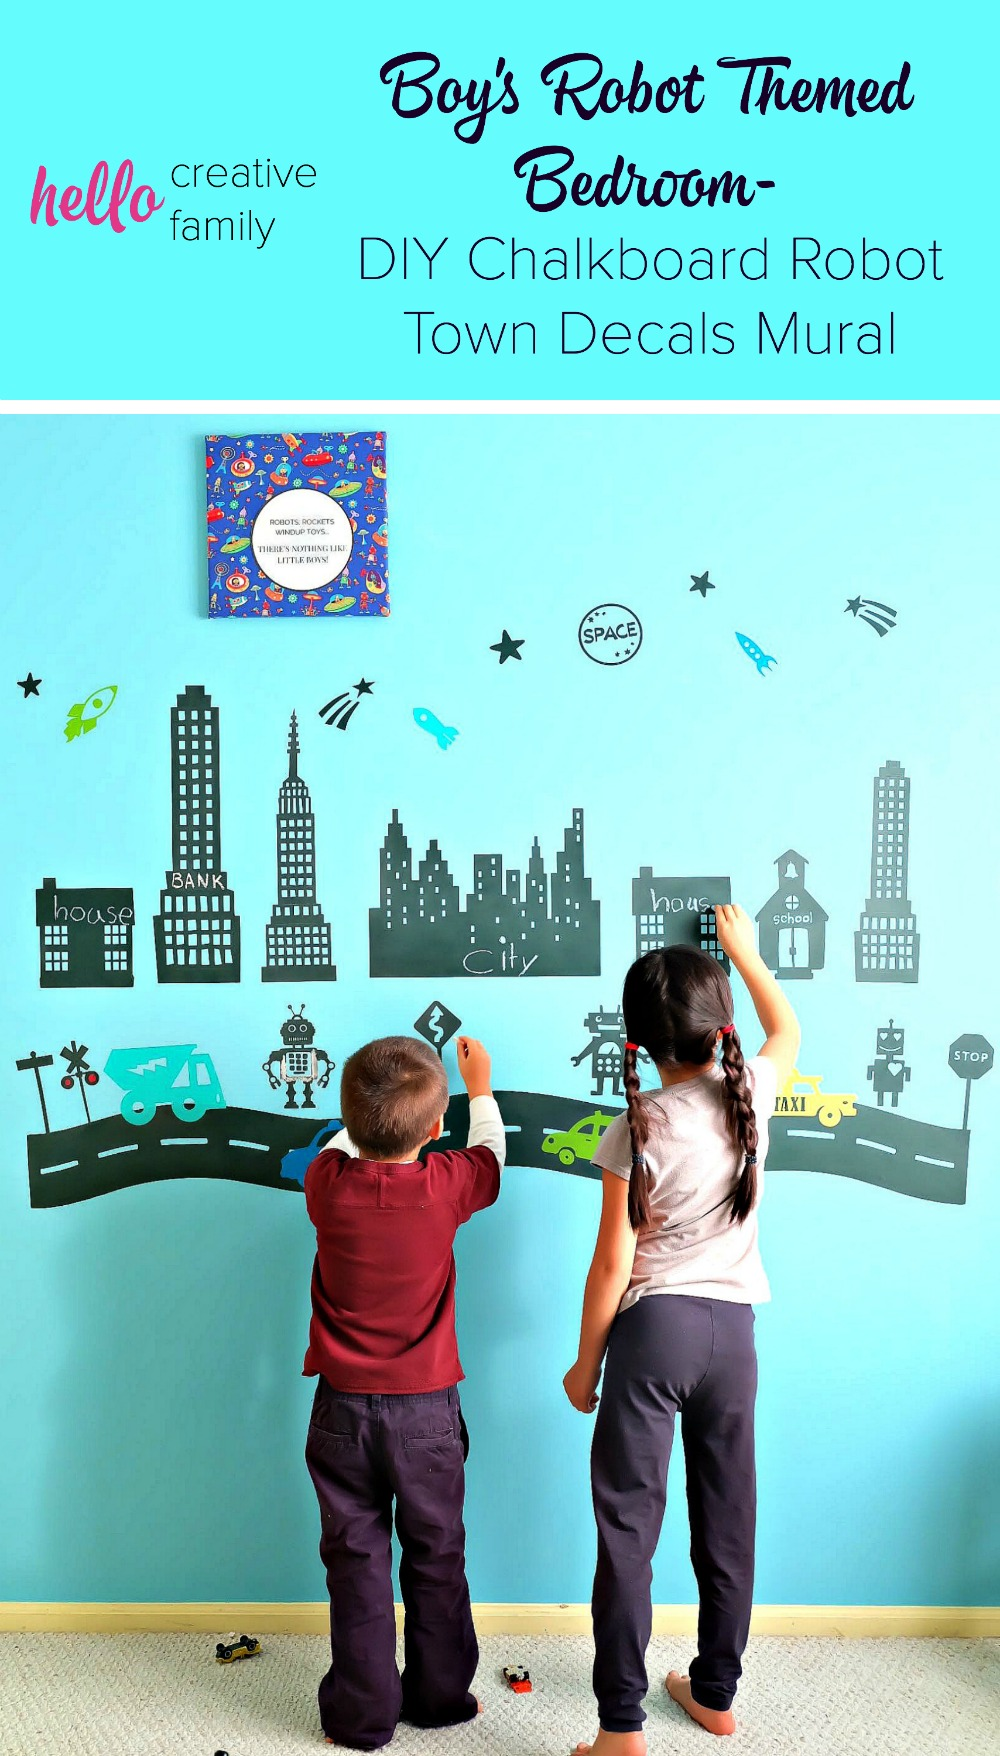 Boy's Robot Themed Bedroom- DIY Chalkboard Robot Town Decals Mural